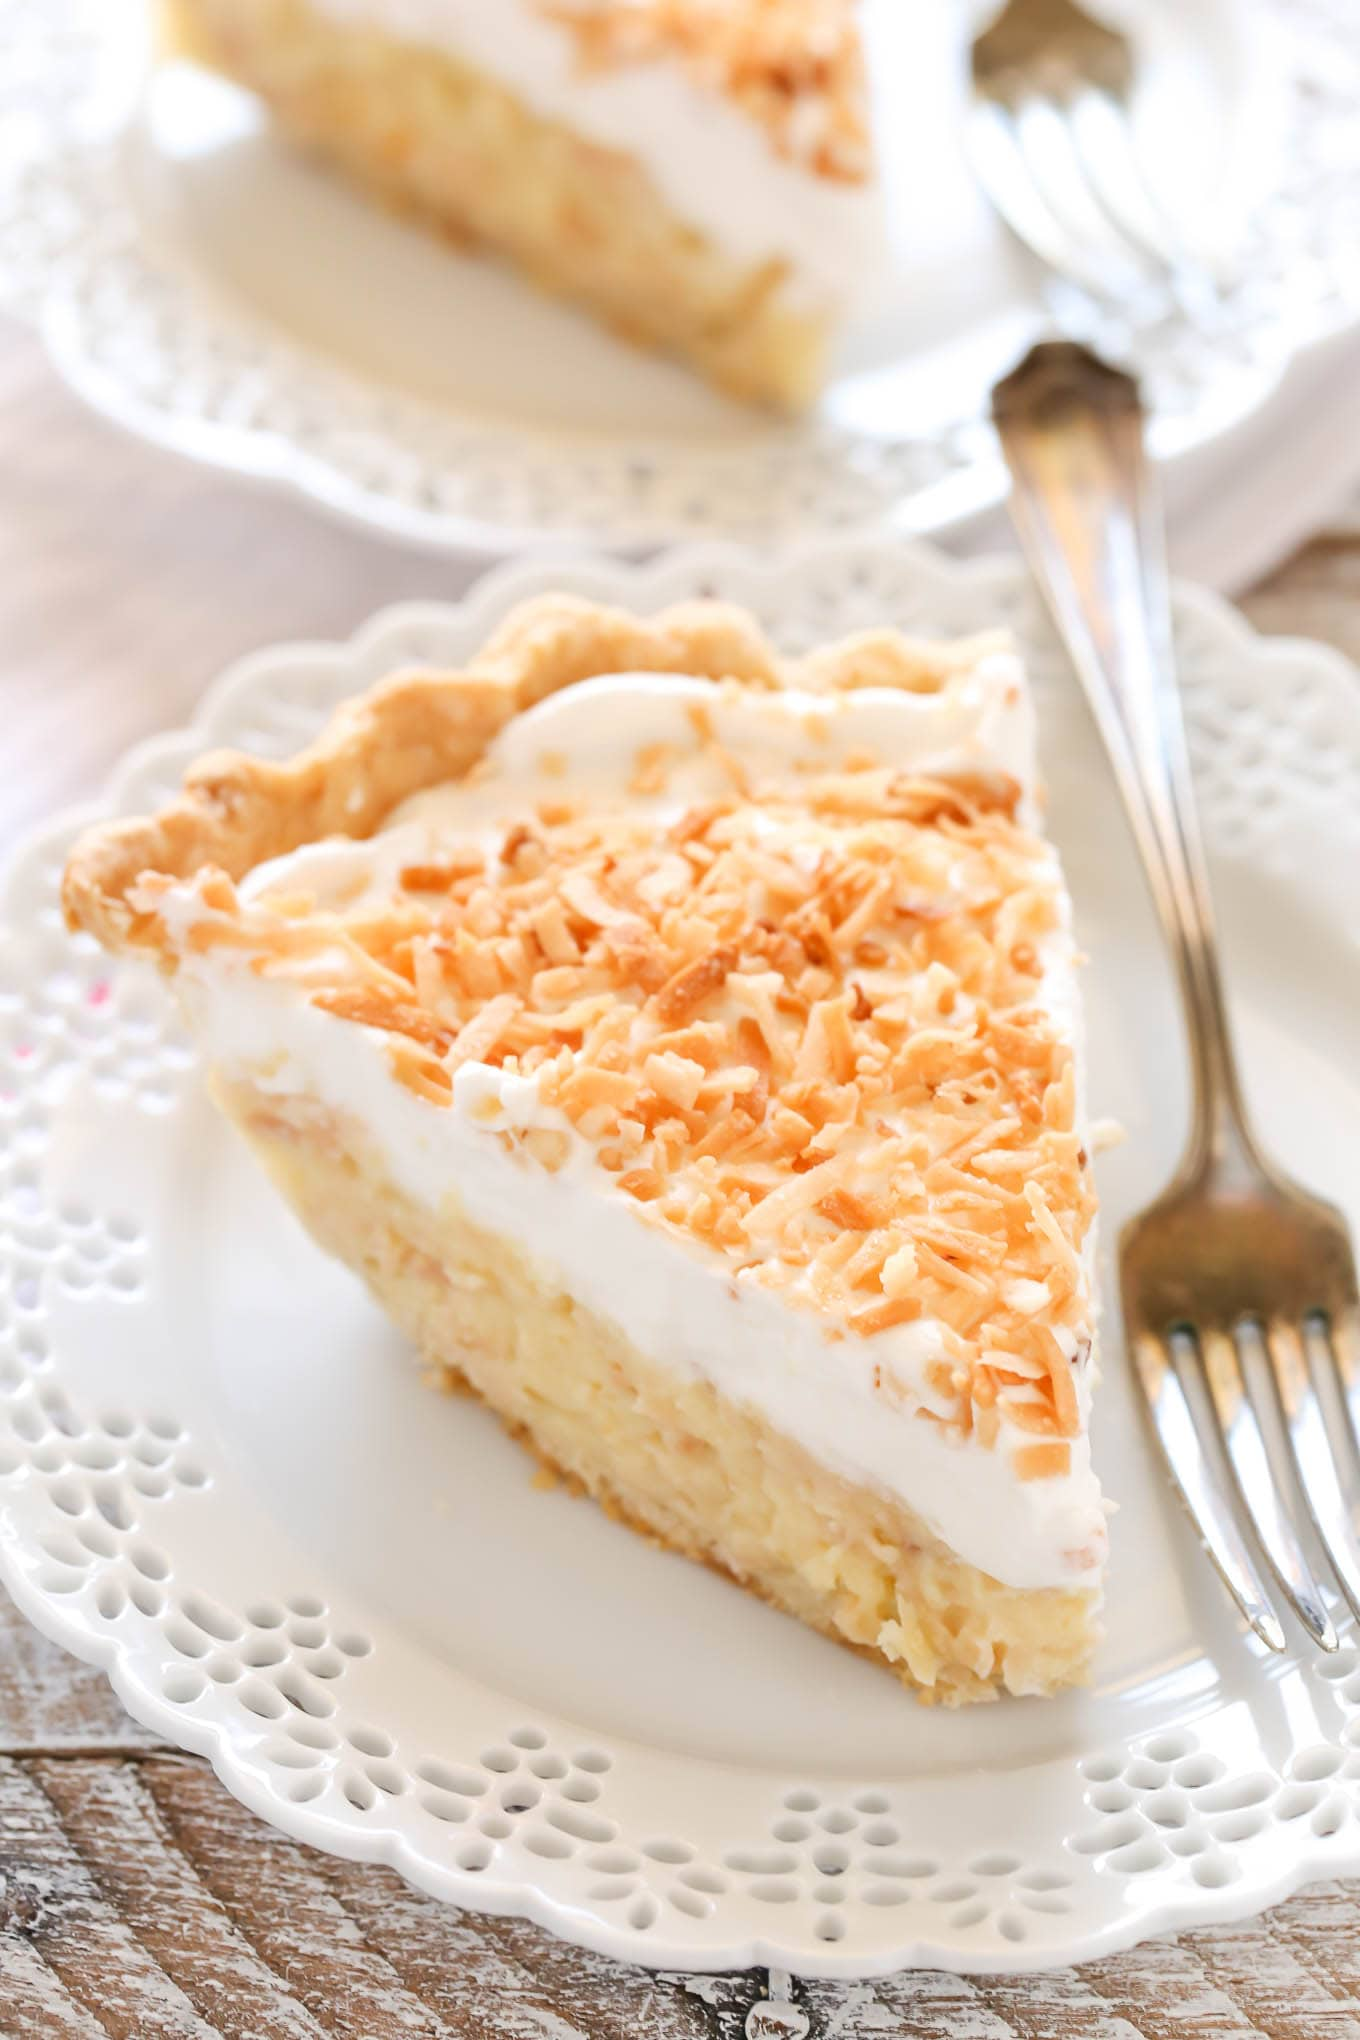 A homemade pie crust filled with a creamy coconut filling and topped with fresh whipped cream and toasted coconut. This homemade coconut cream pie recipe is so easy to make and delicious!